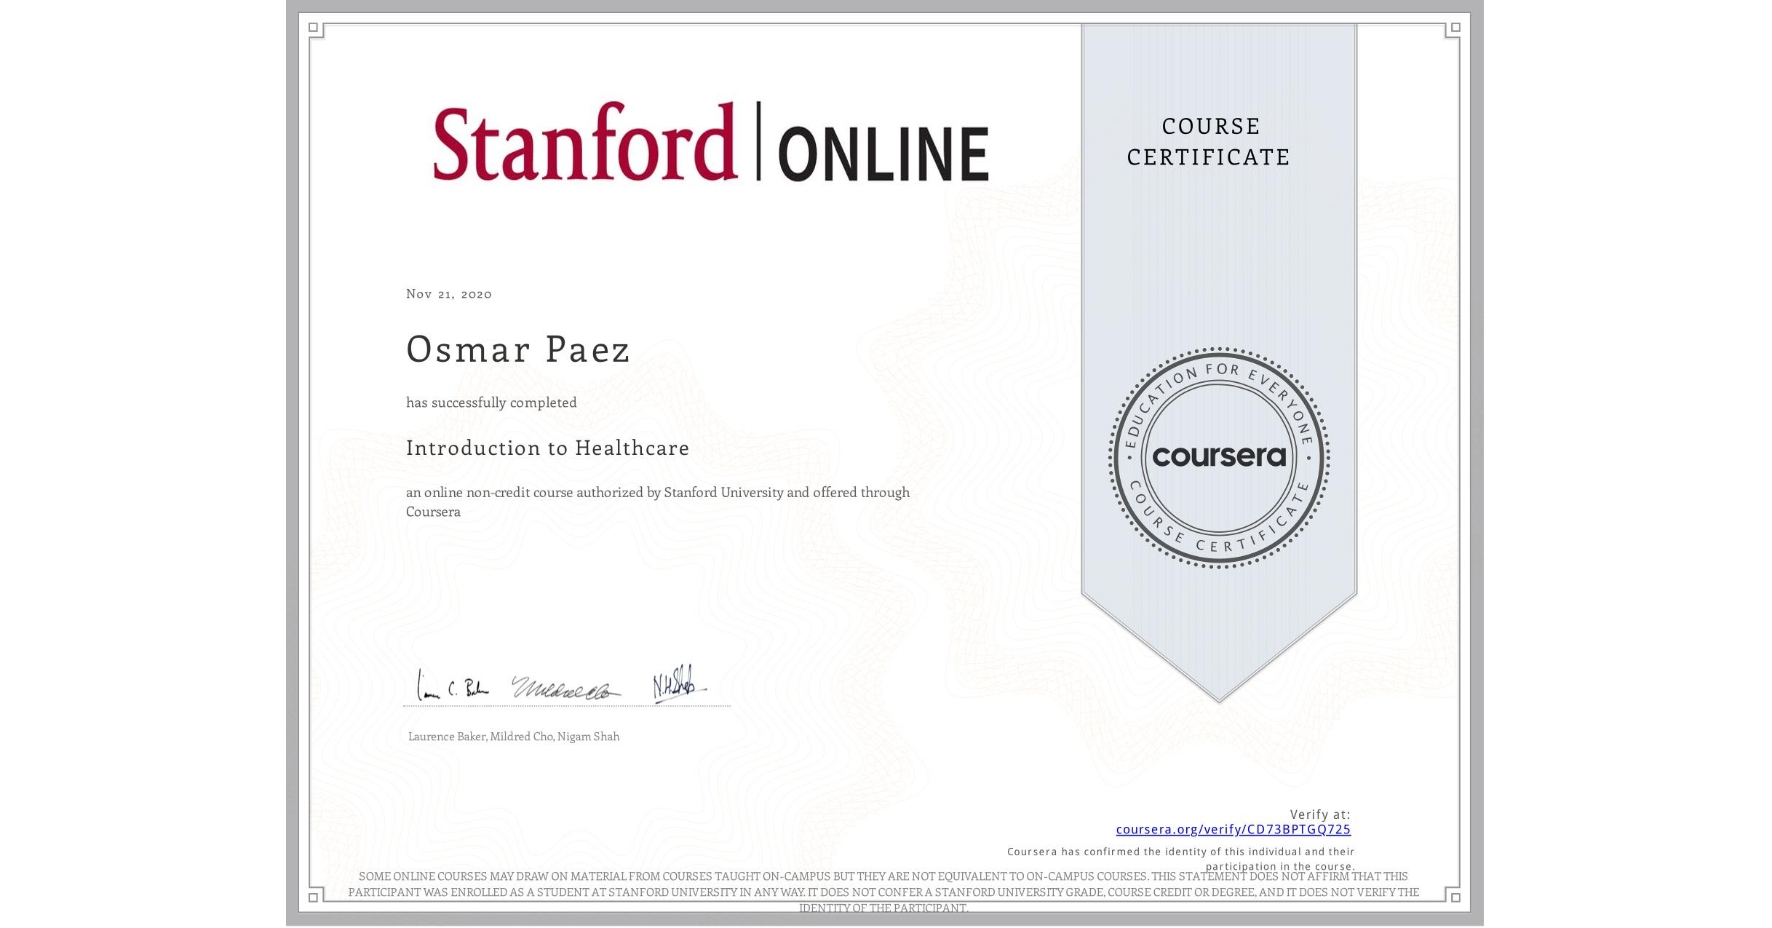 View certificate for Osmar Paez, Introduction to Healthcare, an online non-credit course authorized by Stanford University and offered through Coursera